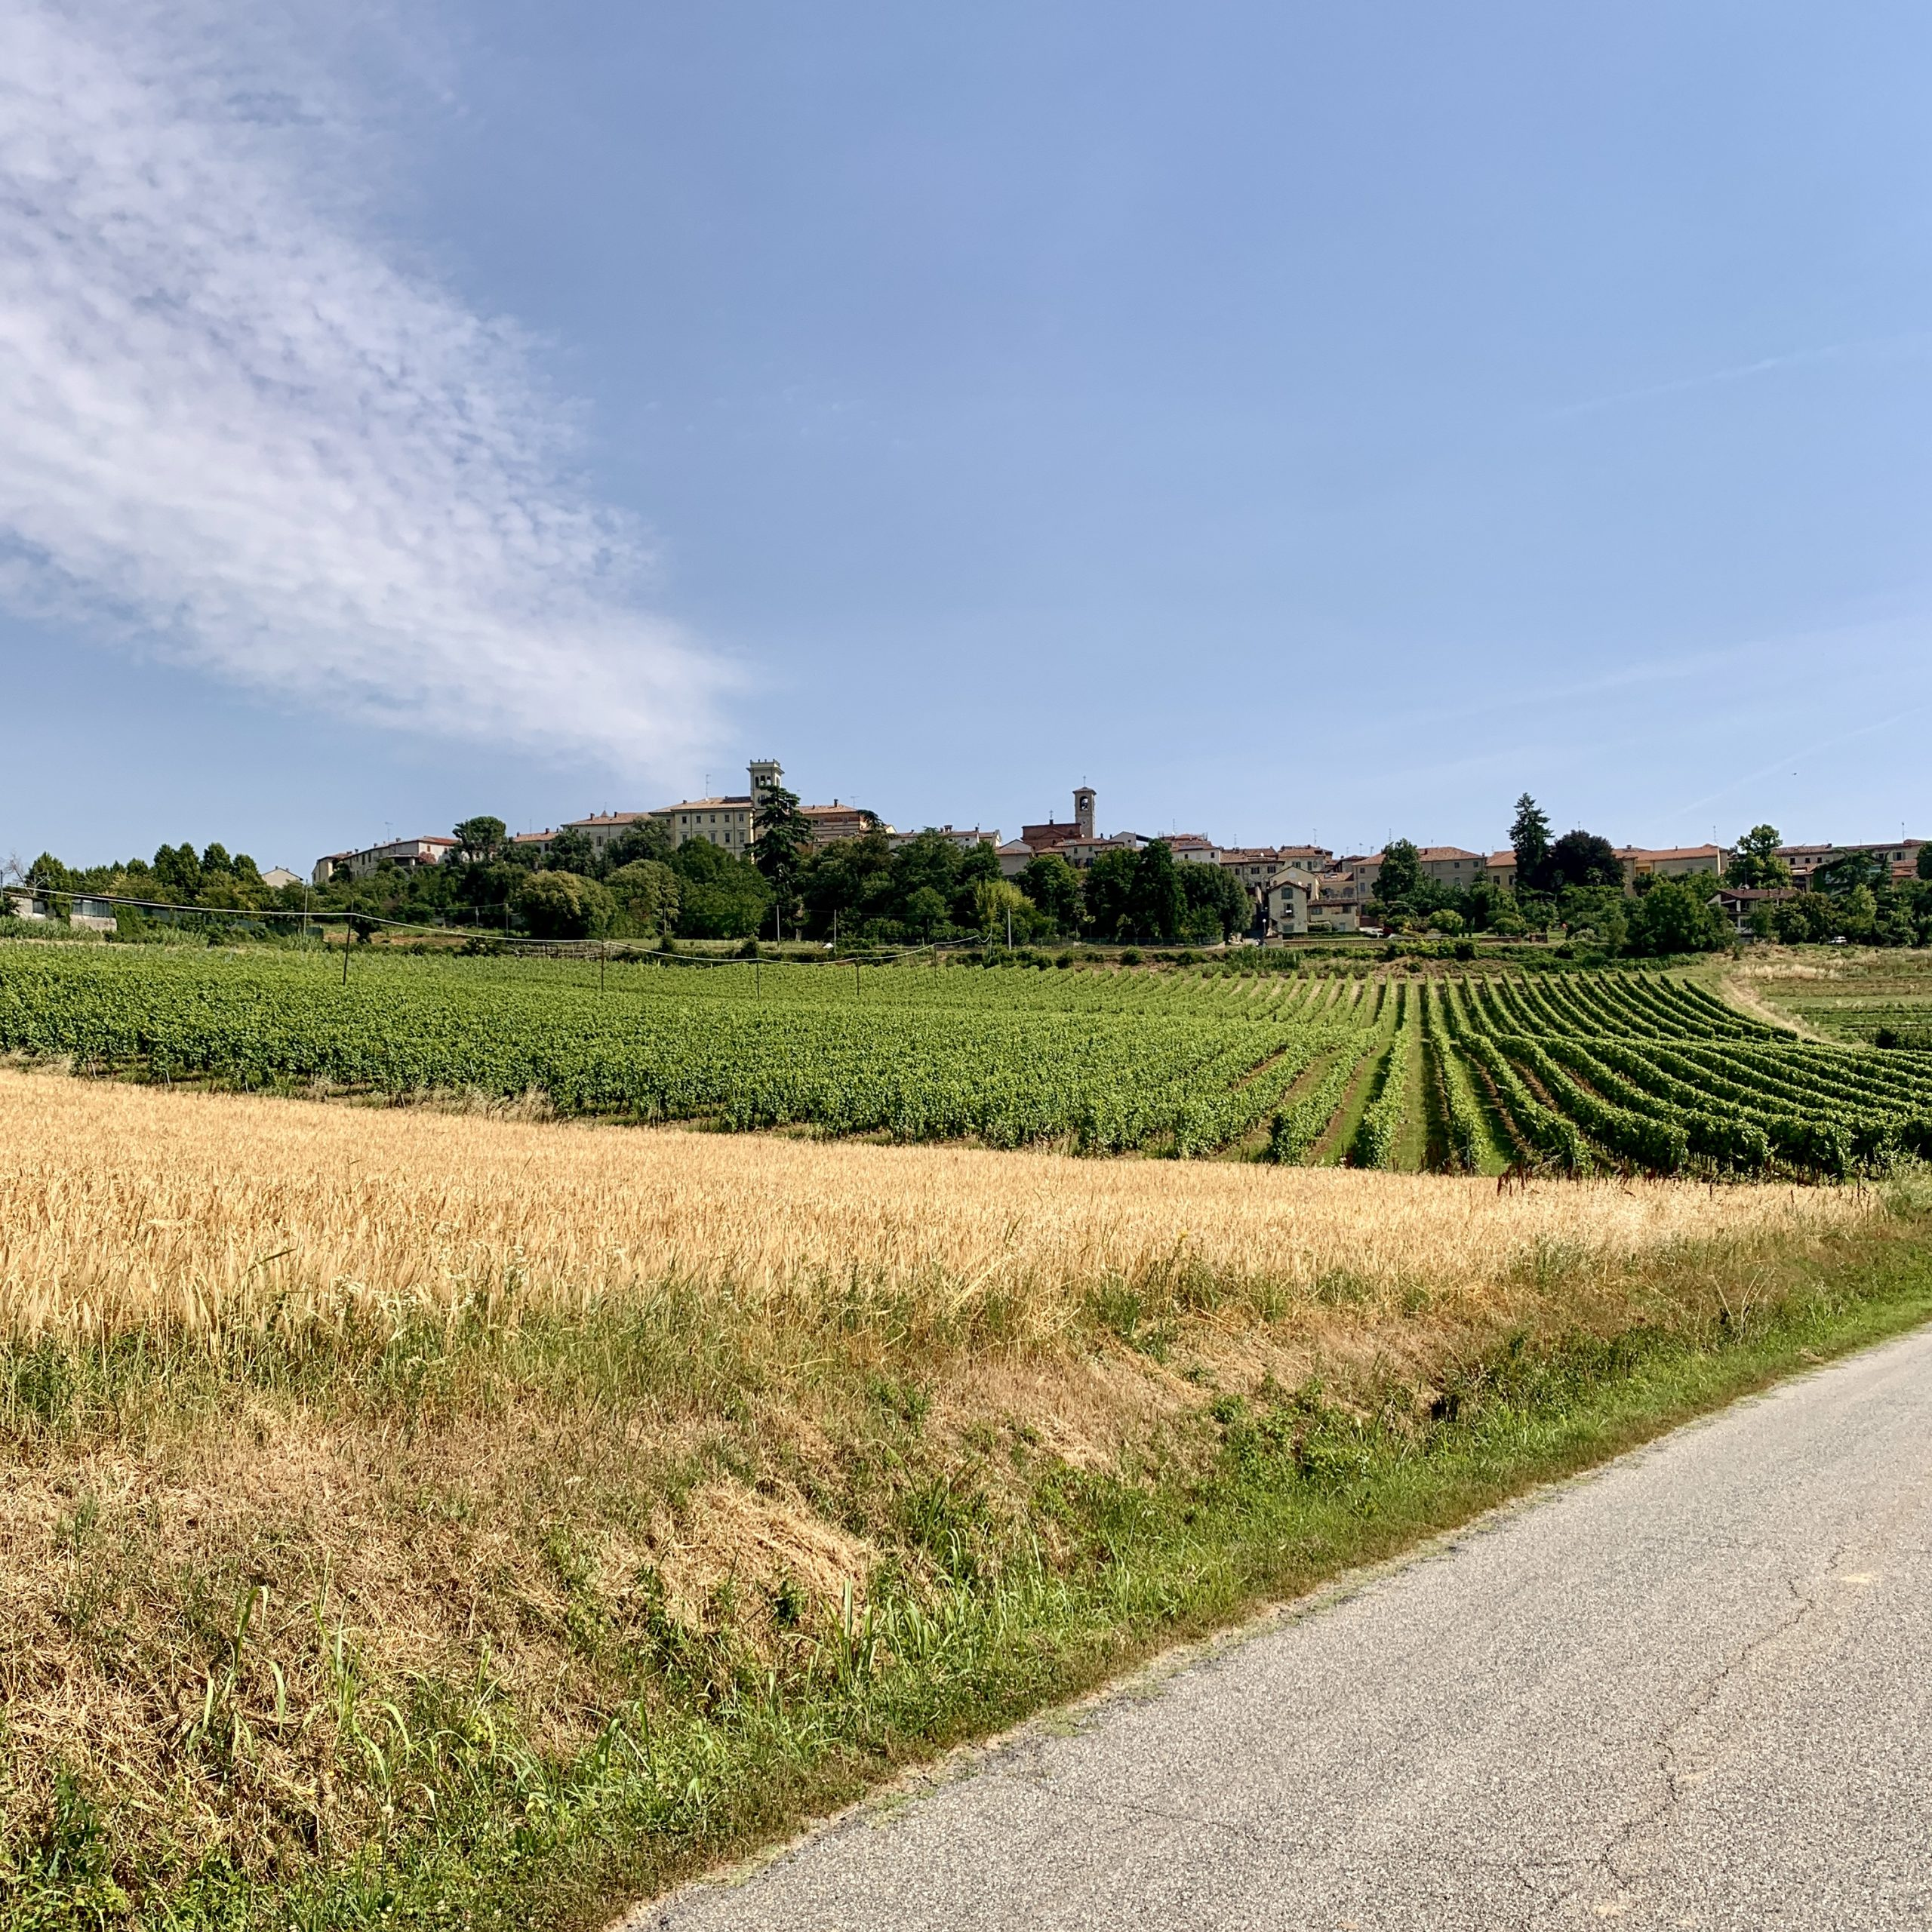 Cella Monte and its vineyards